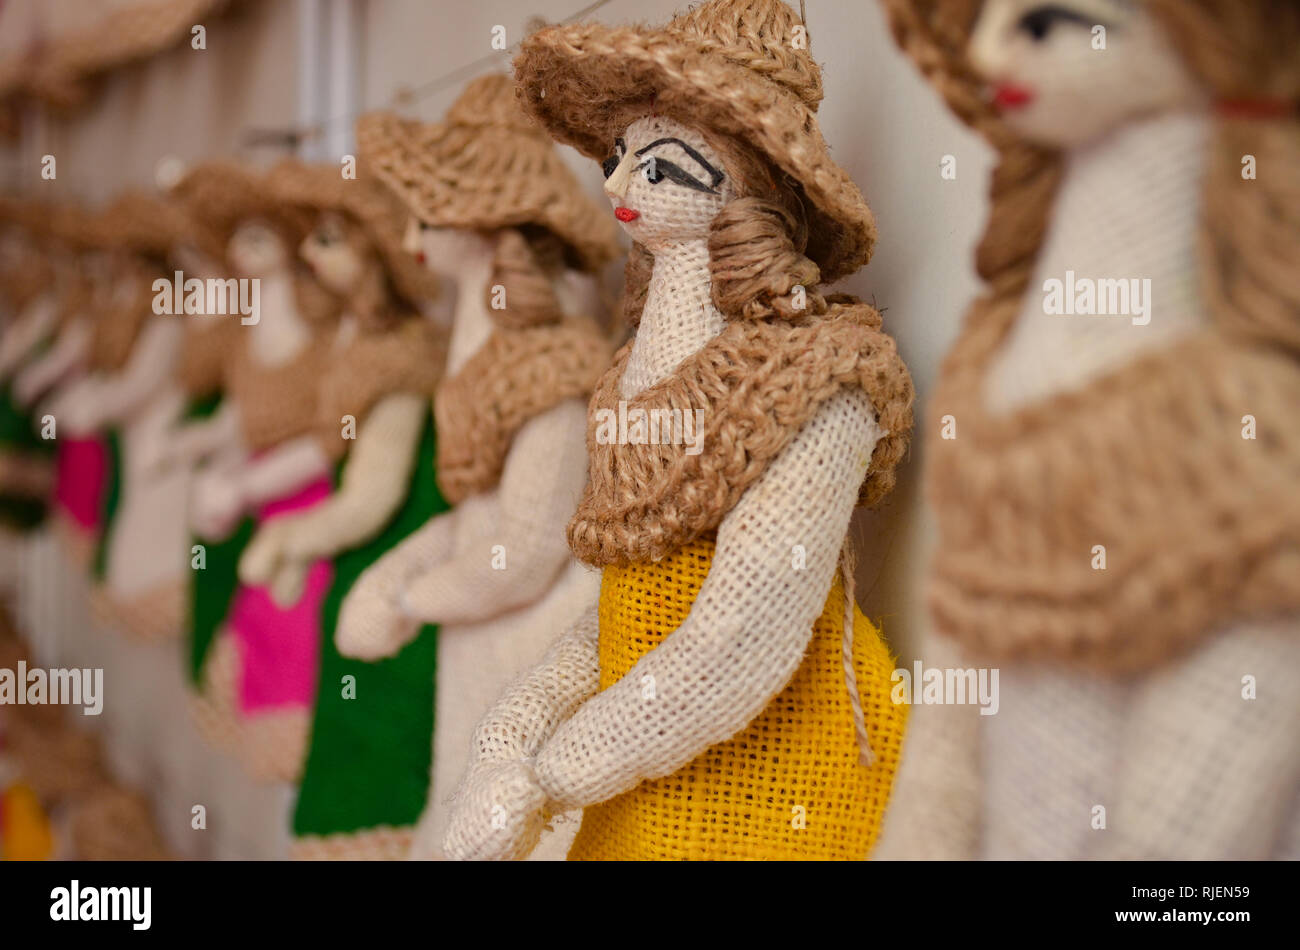 Jute puppet dolls wearing hat hanging on display for sale at a handicraft exhibition in Delhi Haat, Delhi, India Stock Photo